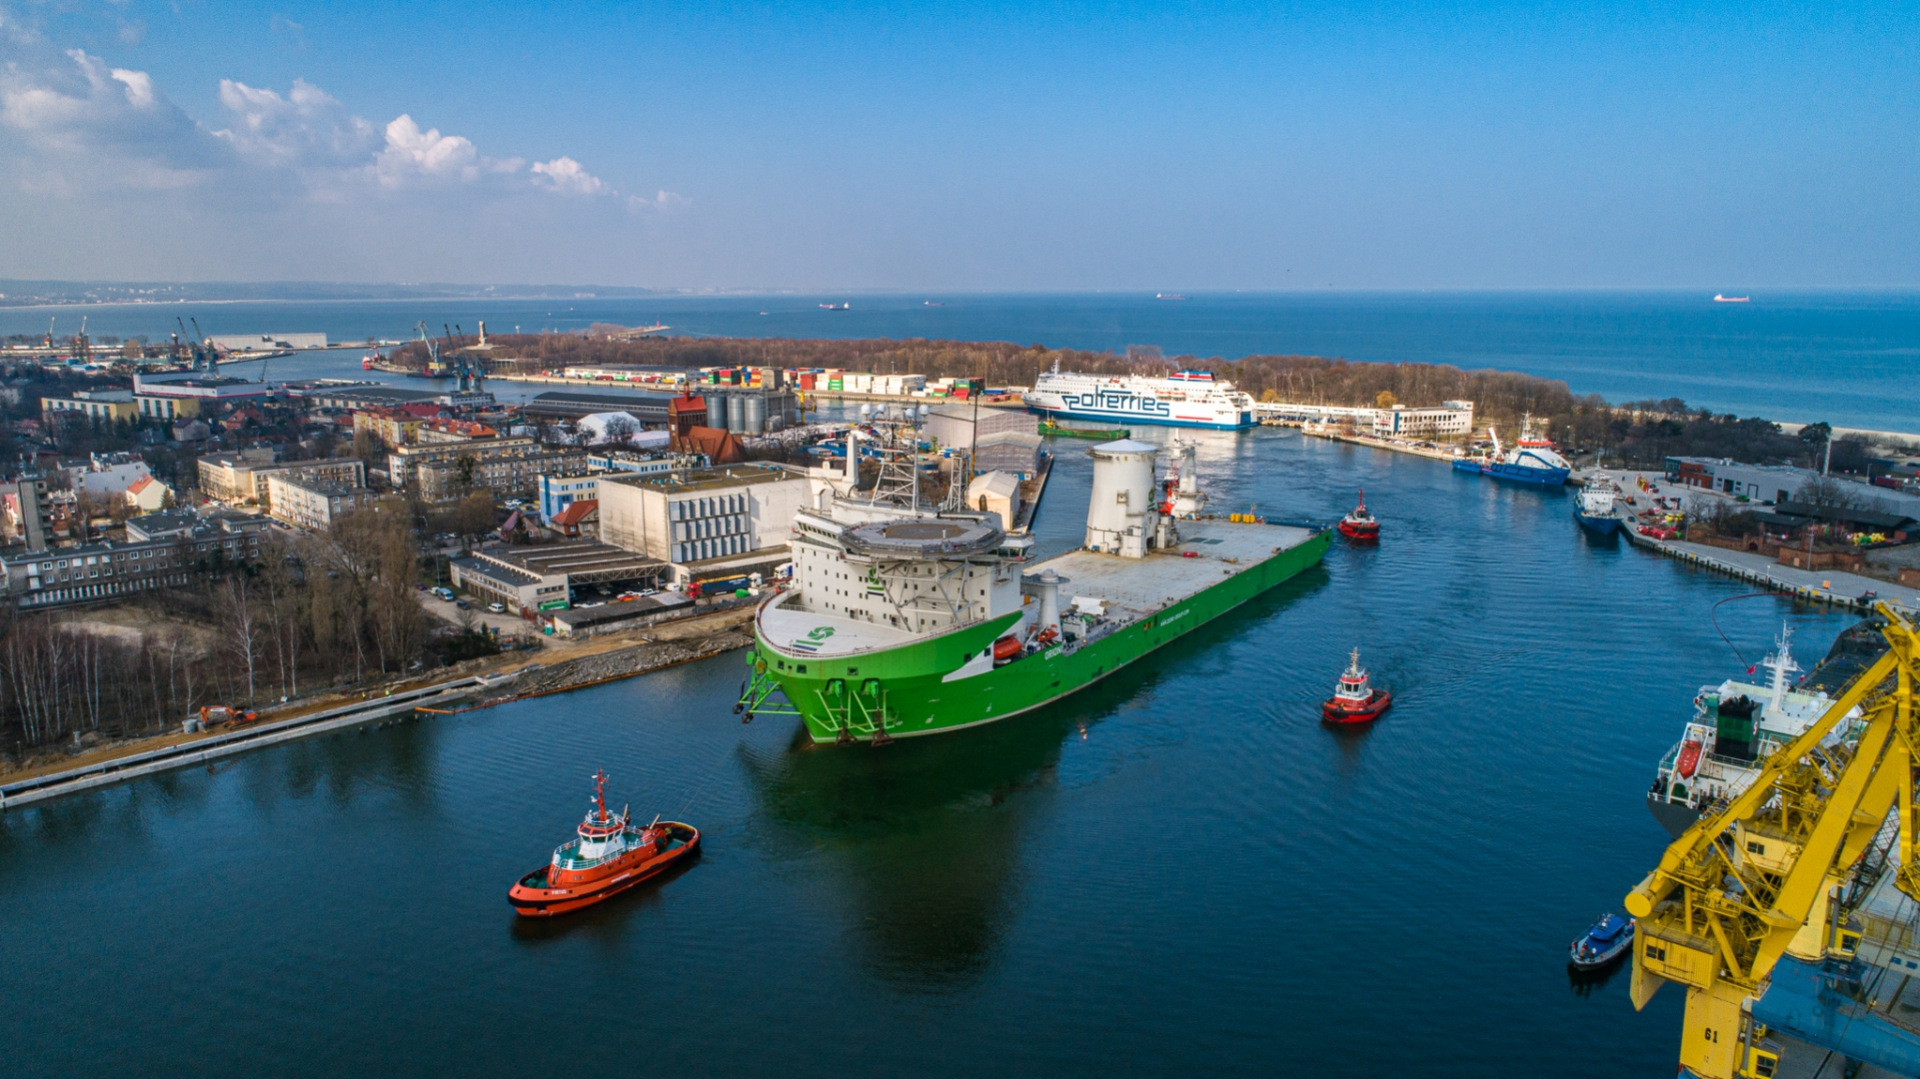 Orion I - offshore colossus entered the Port of Gdansk after accident involving one of the largest cranes in the world